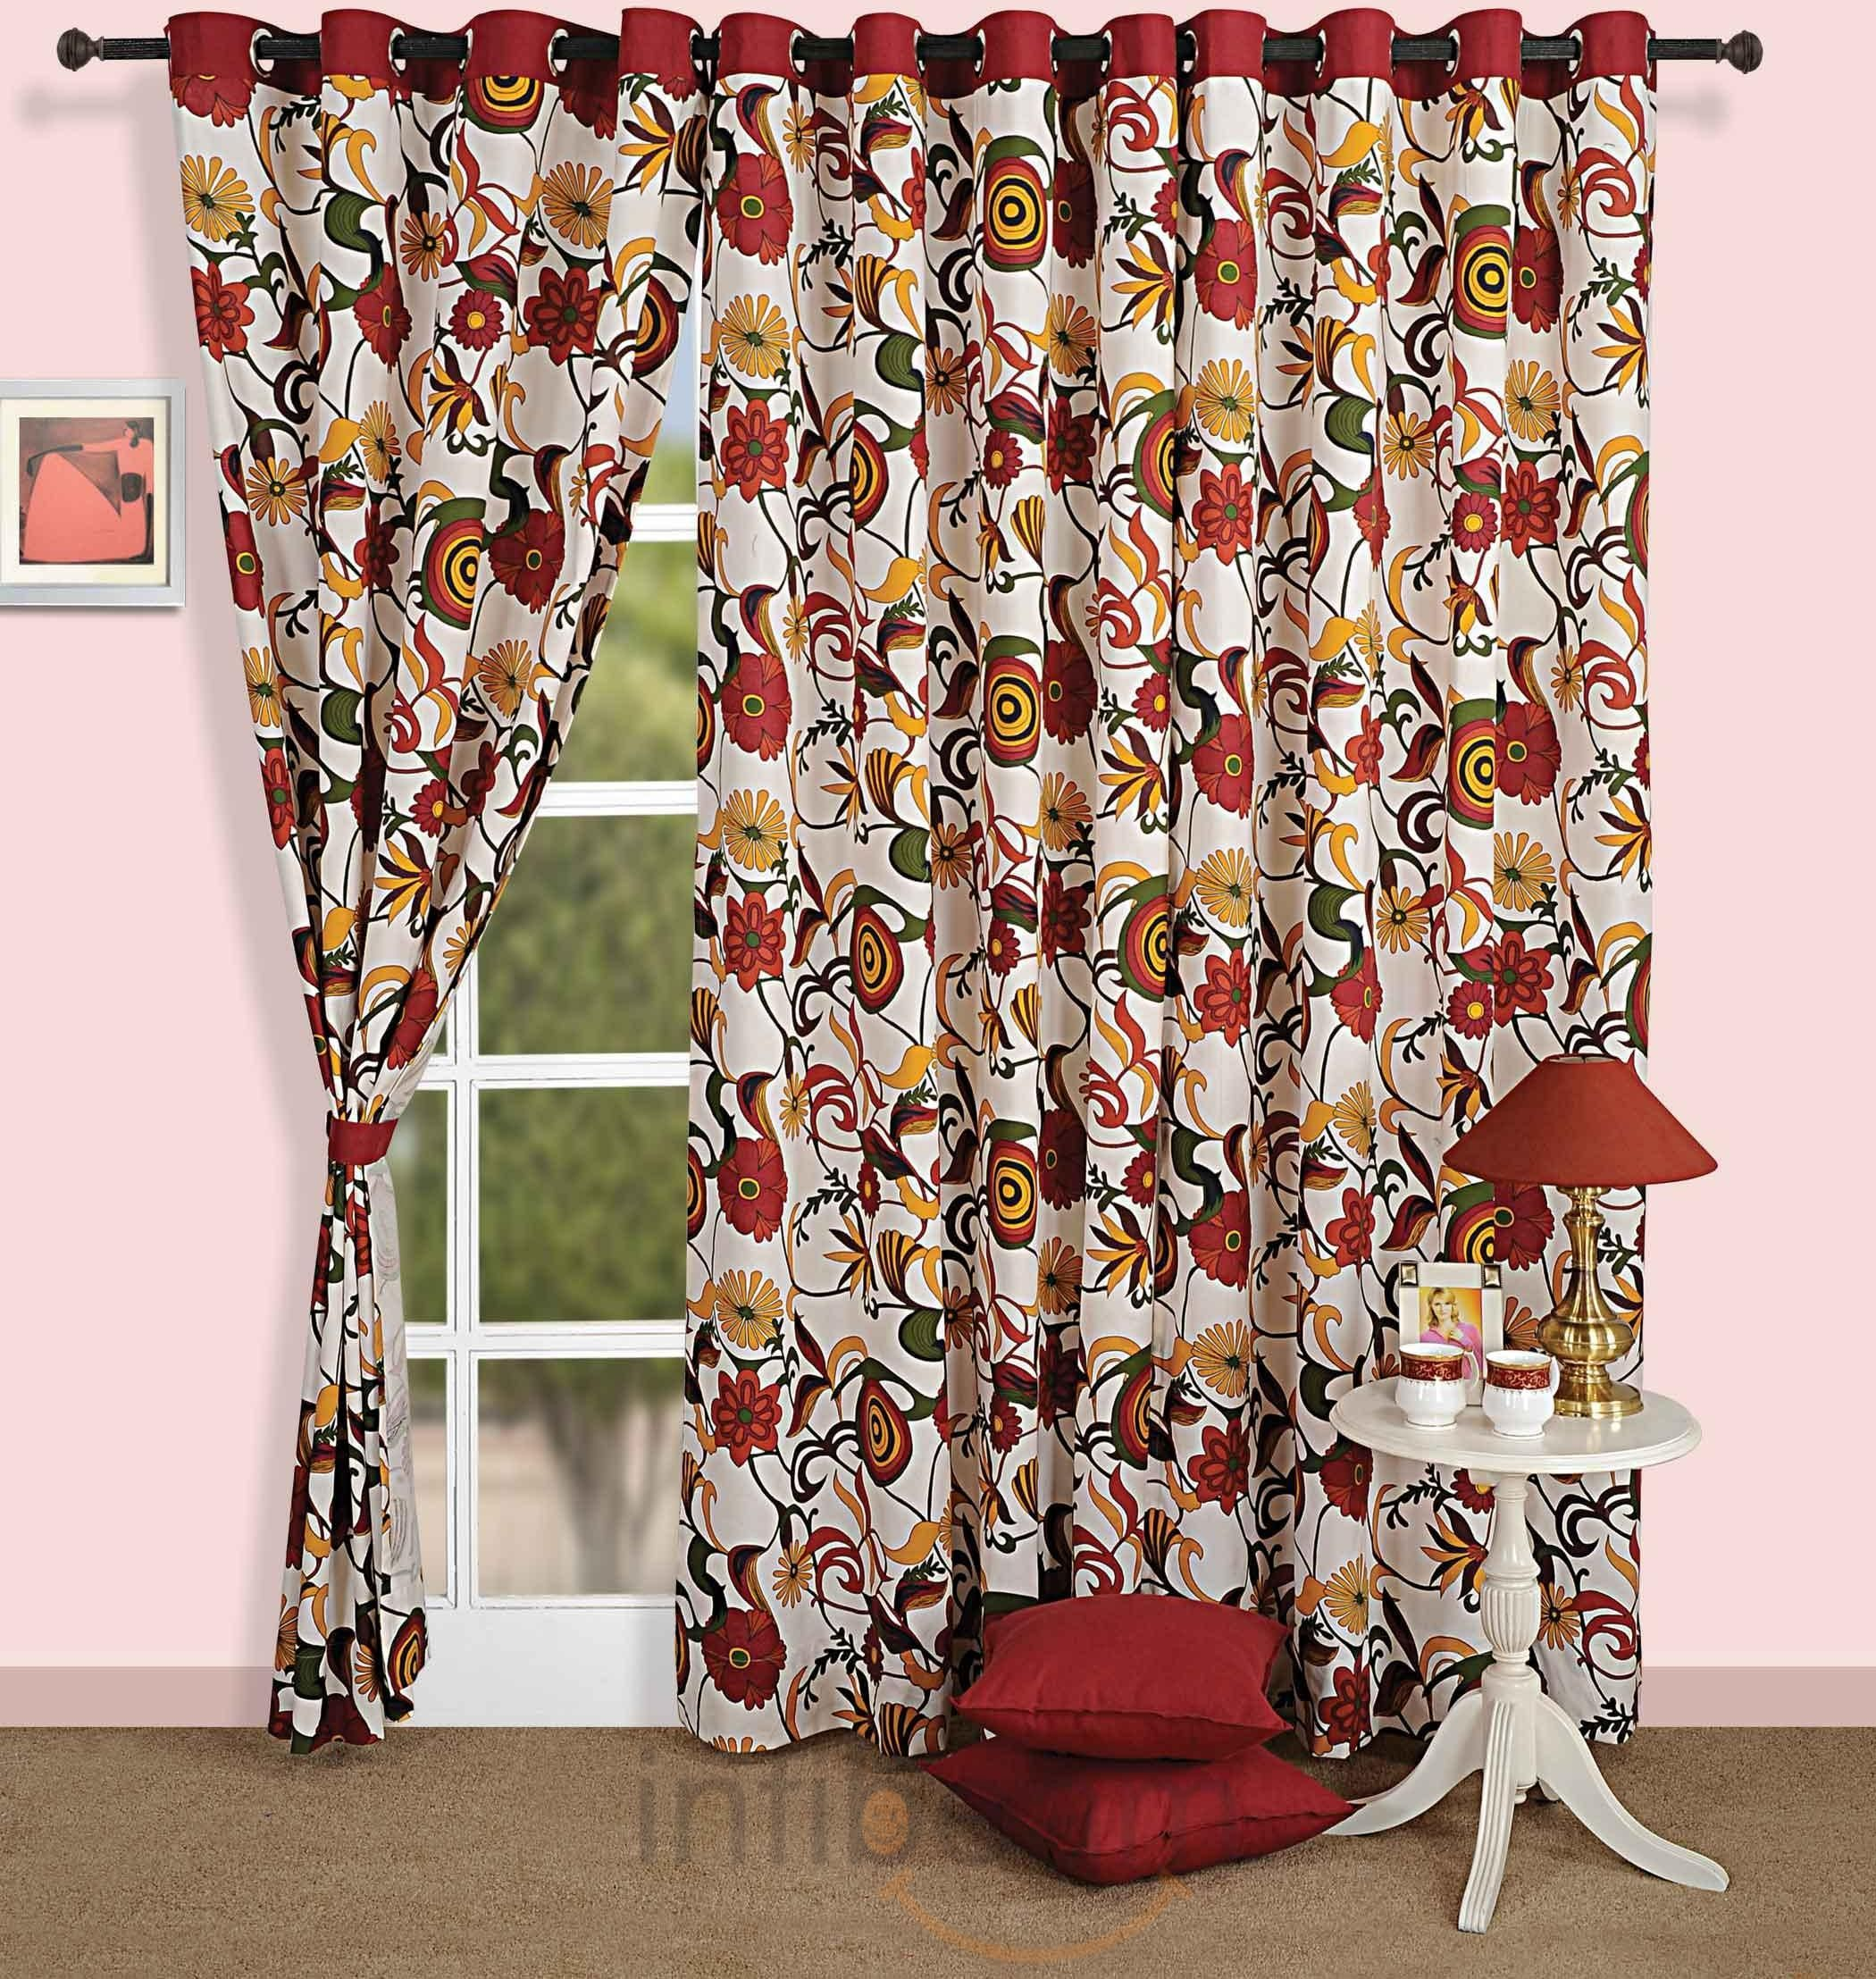 Curtains Are Items Of Fabric Proposed To Block Or Stop The L